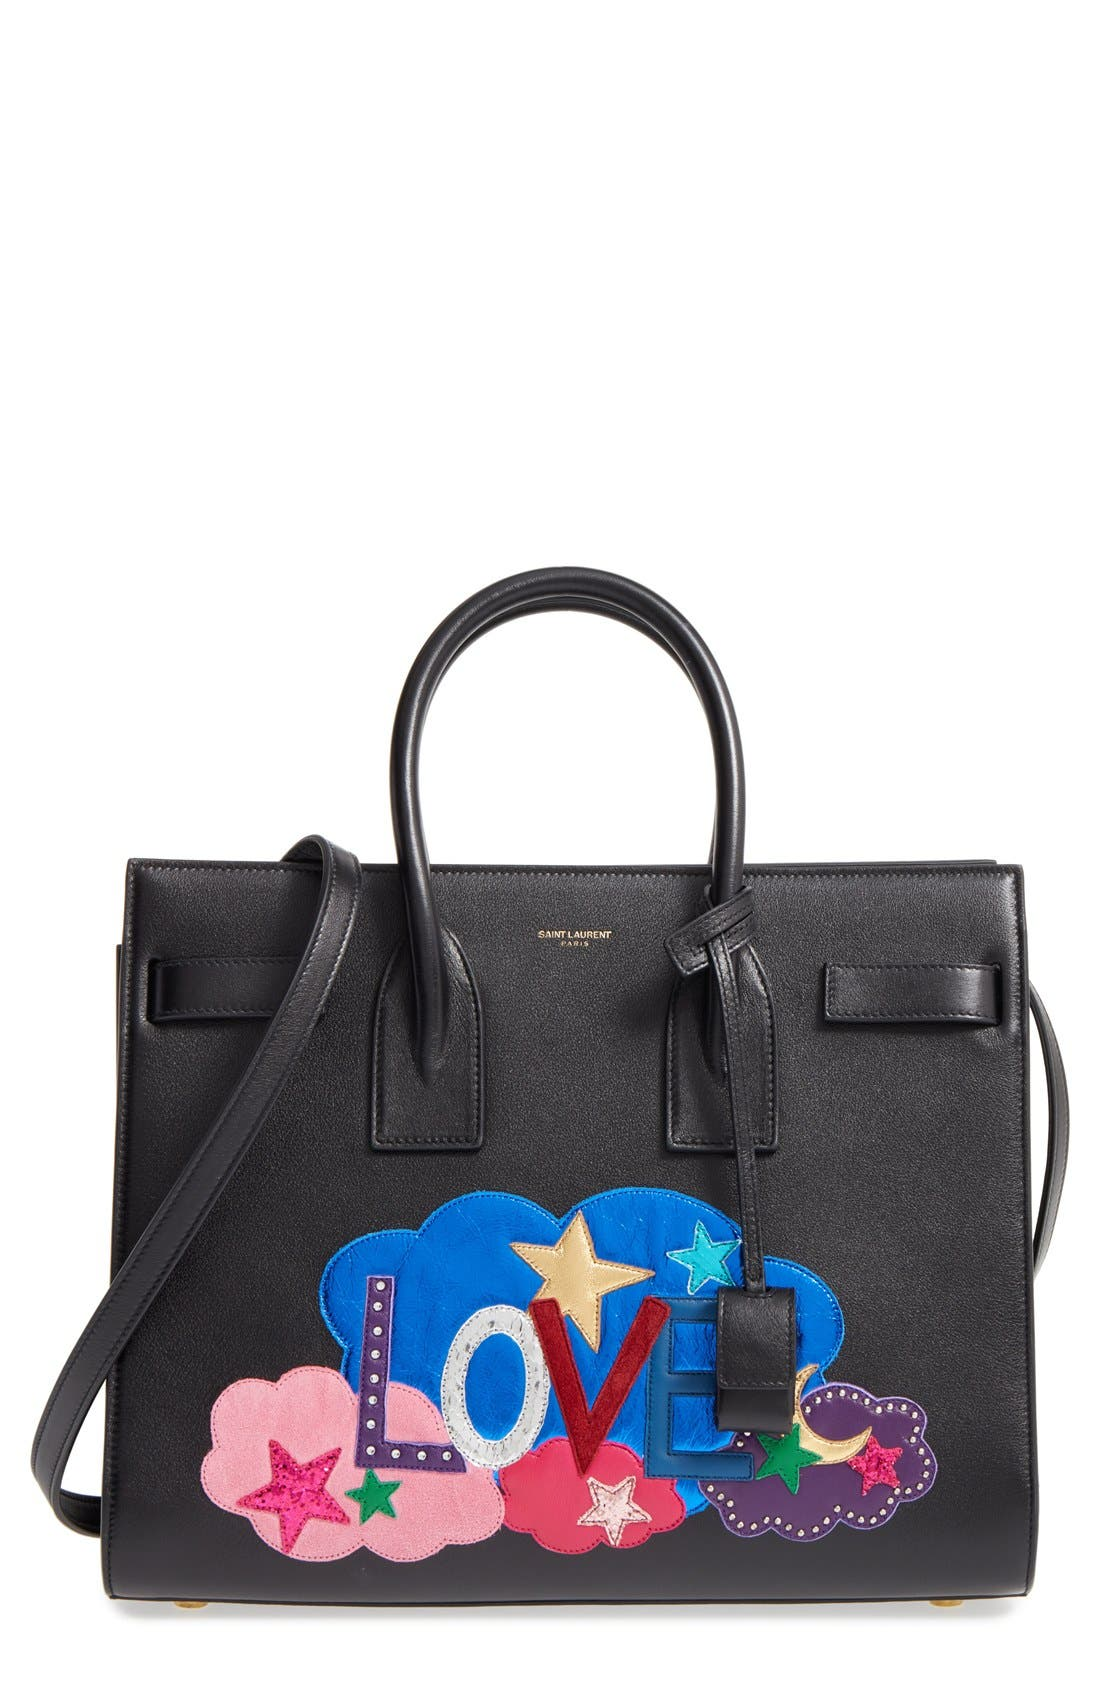 Alternate Image 1 Selected - Saint Laurent Baby Sac de Jour Patchwork Leather Tote